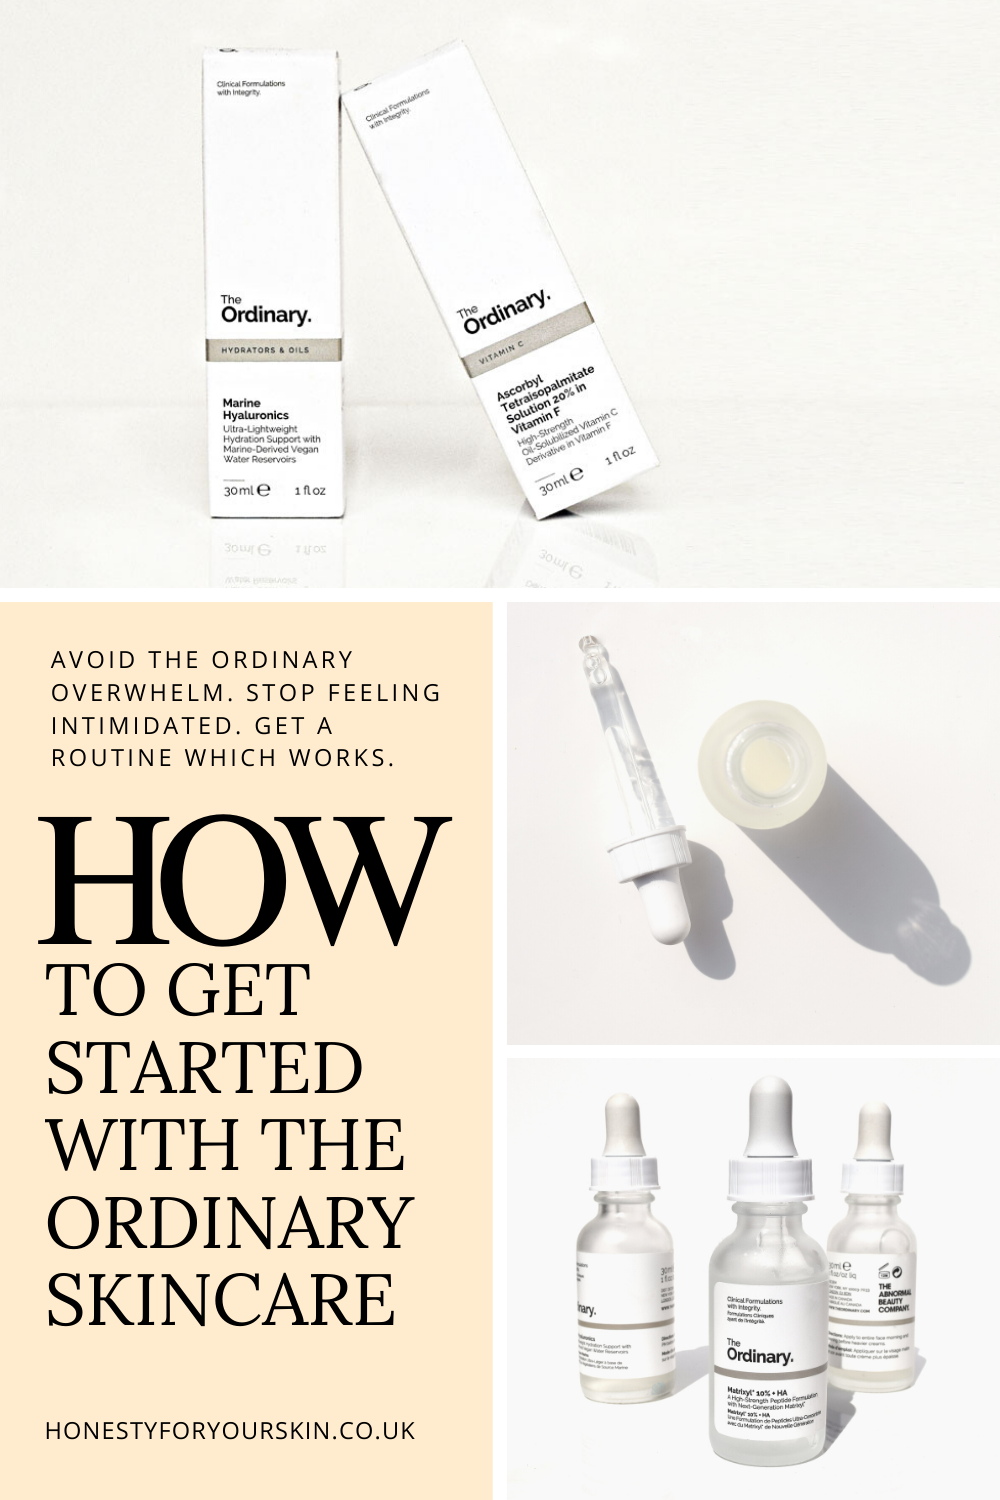 The Ordinary Skincare Routine How to Mix The Ordinary